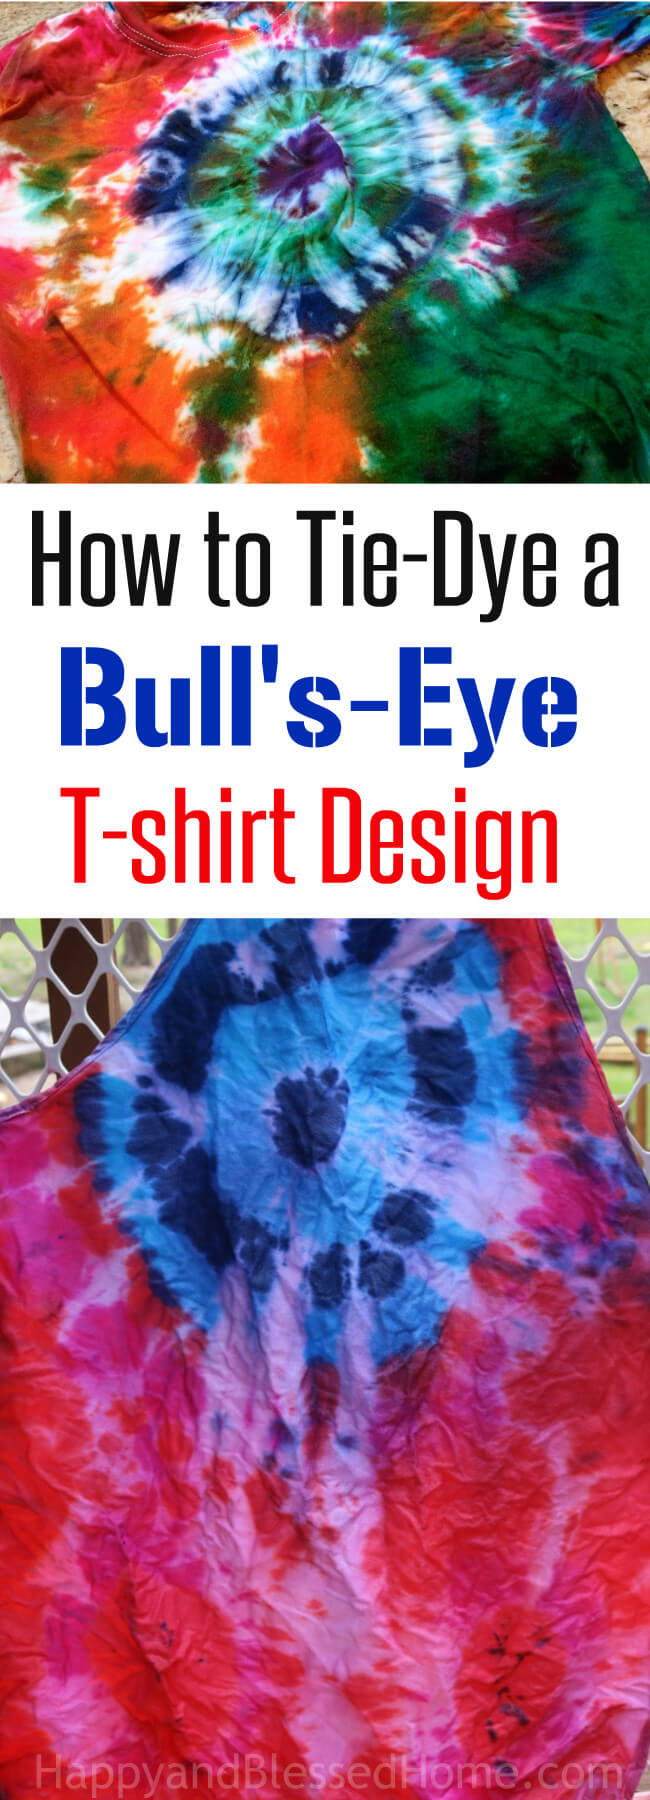 Simple Turtorial on How to Tie-Dye a Bull's-Eye T-shirt Design